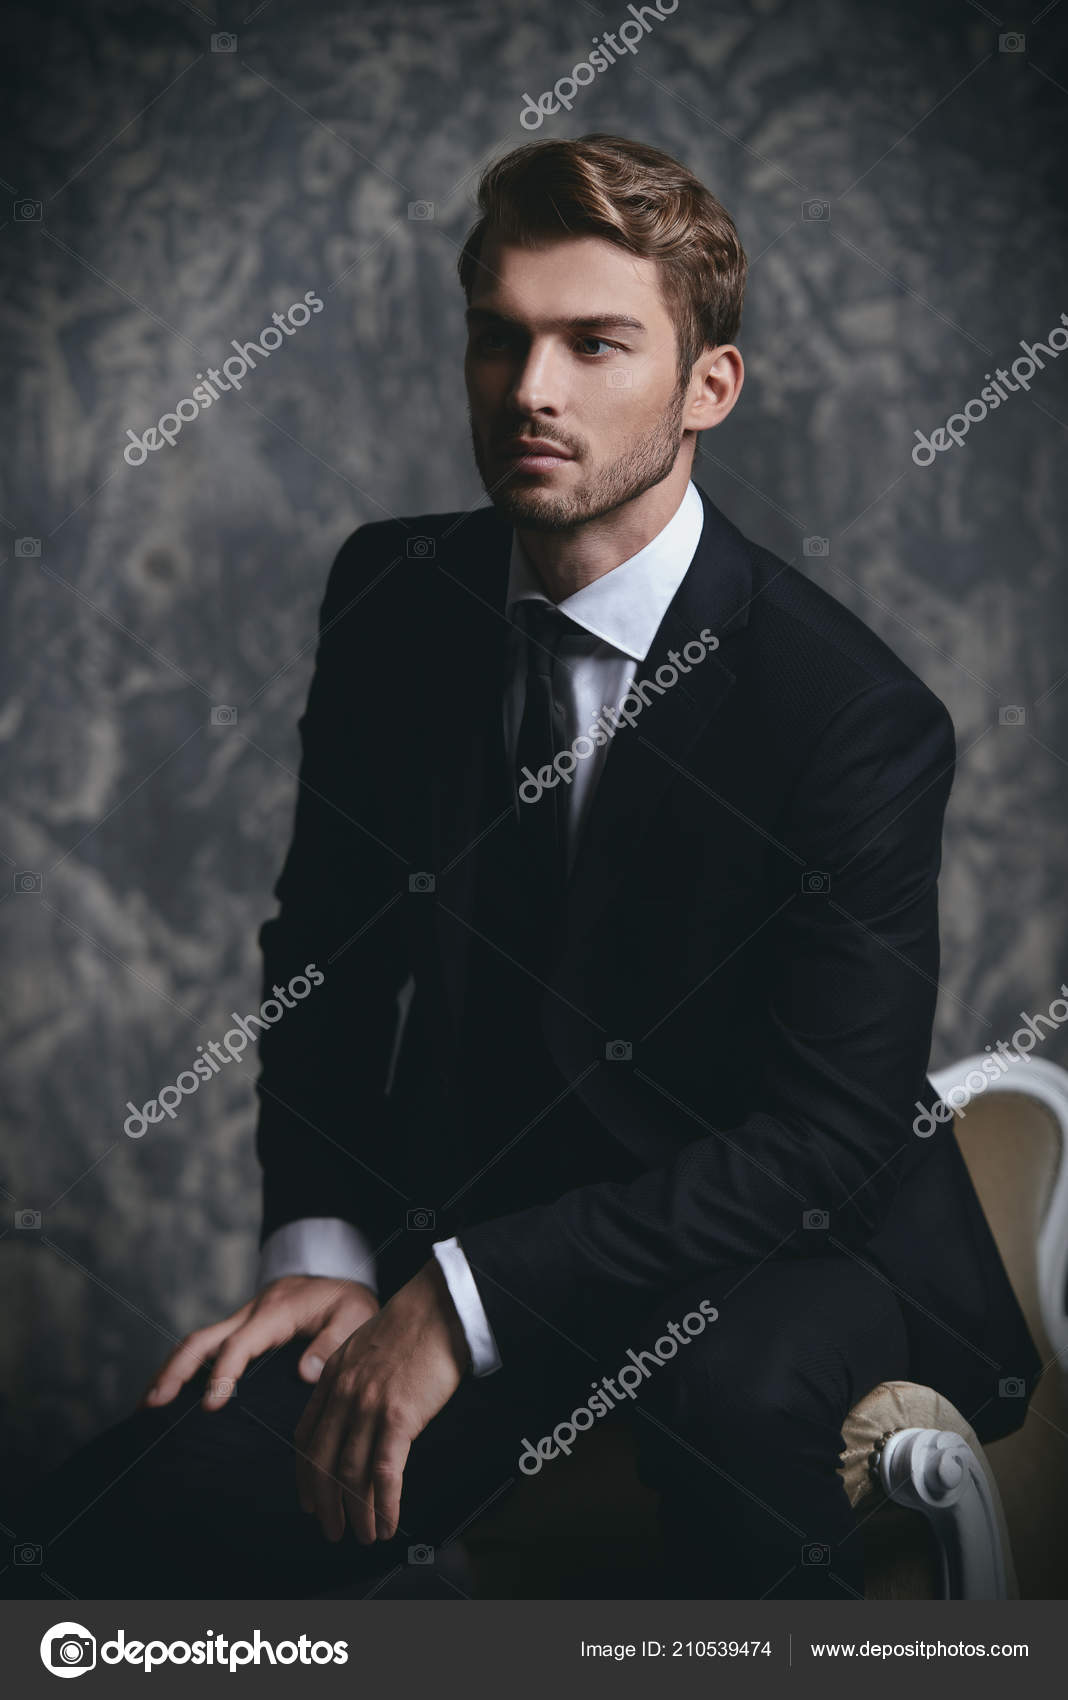 38beb7496d6d Portrait of a handsome man in an elegant suit sitting in an armchair on a  grunge background. Studio shot.